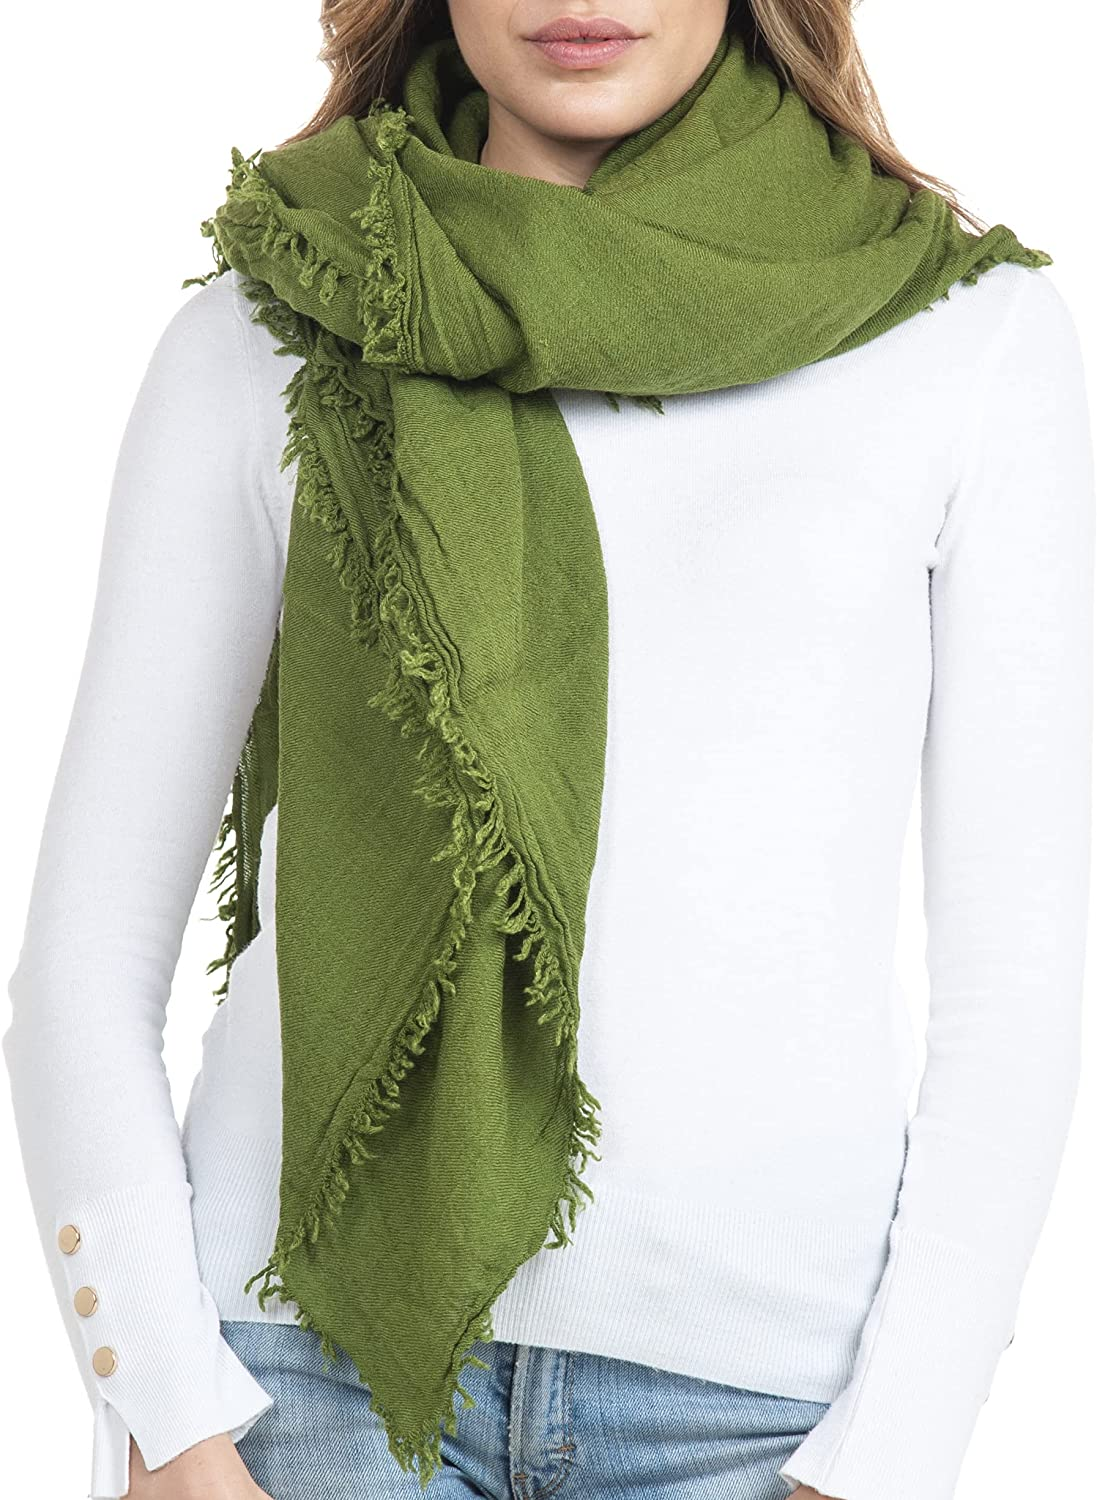 Recommendation GIULIA BIONDI 100% Made in Italy Shawl Scarf Silk Blan Wrap OFFer Wool